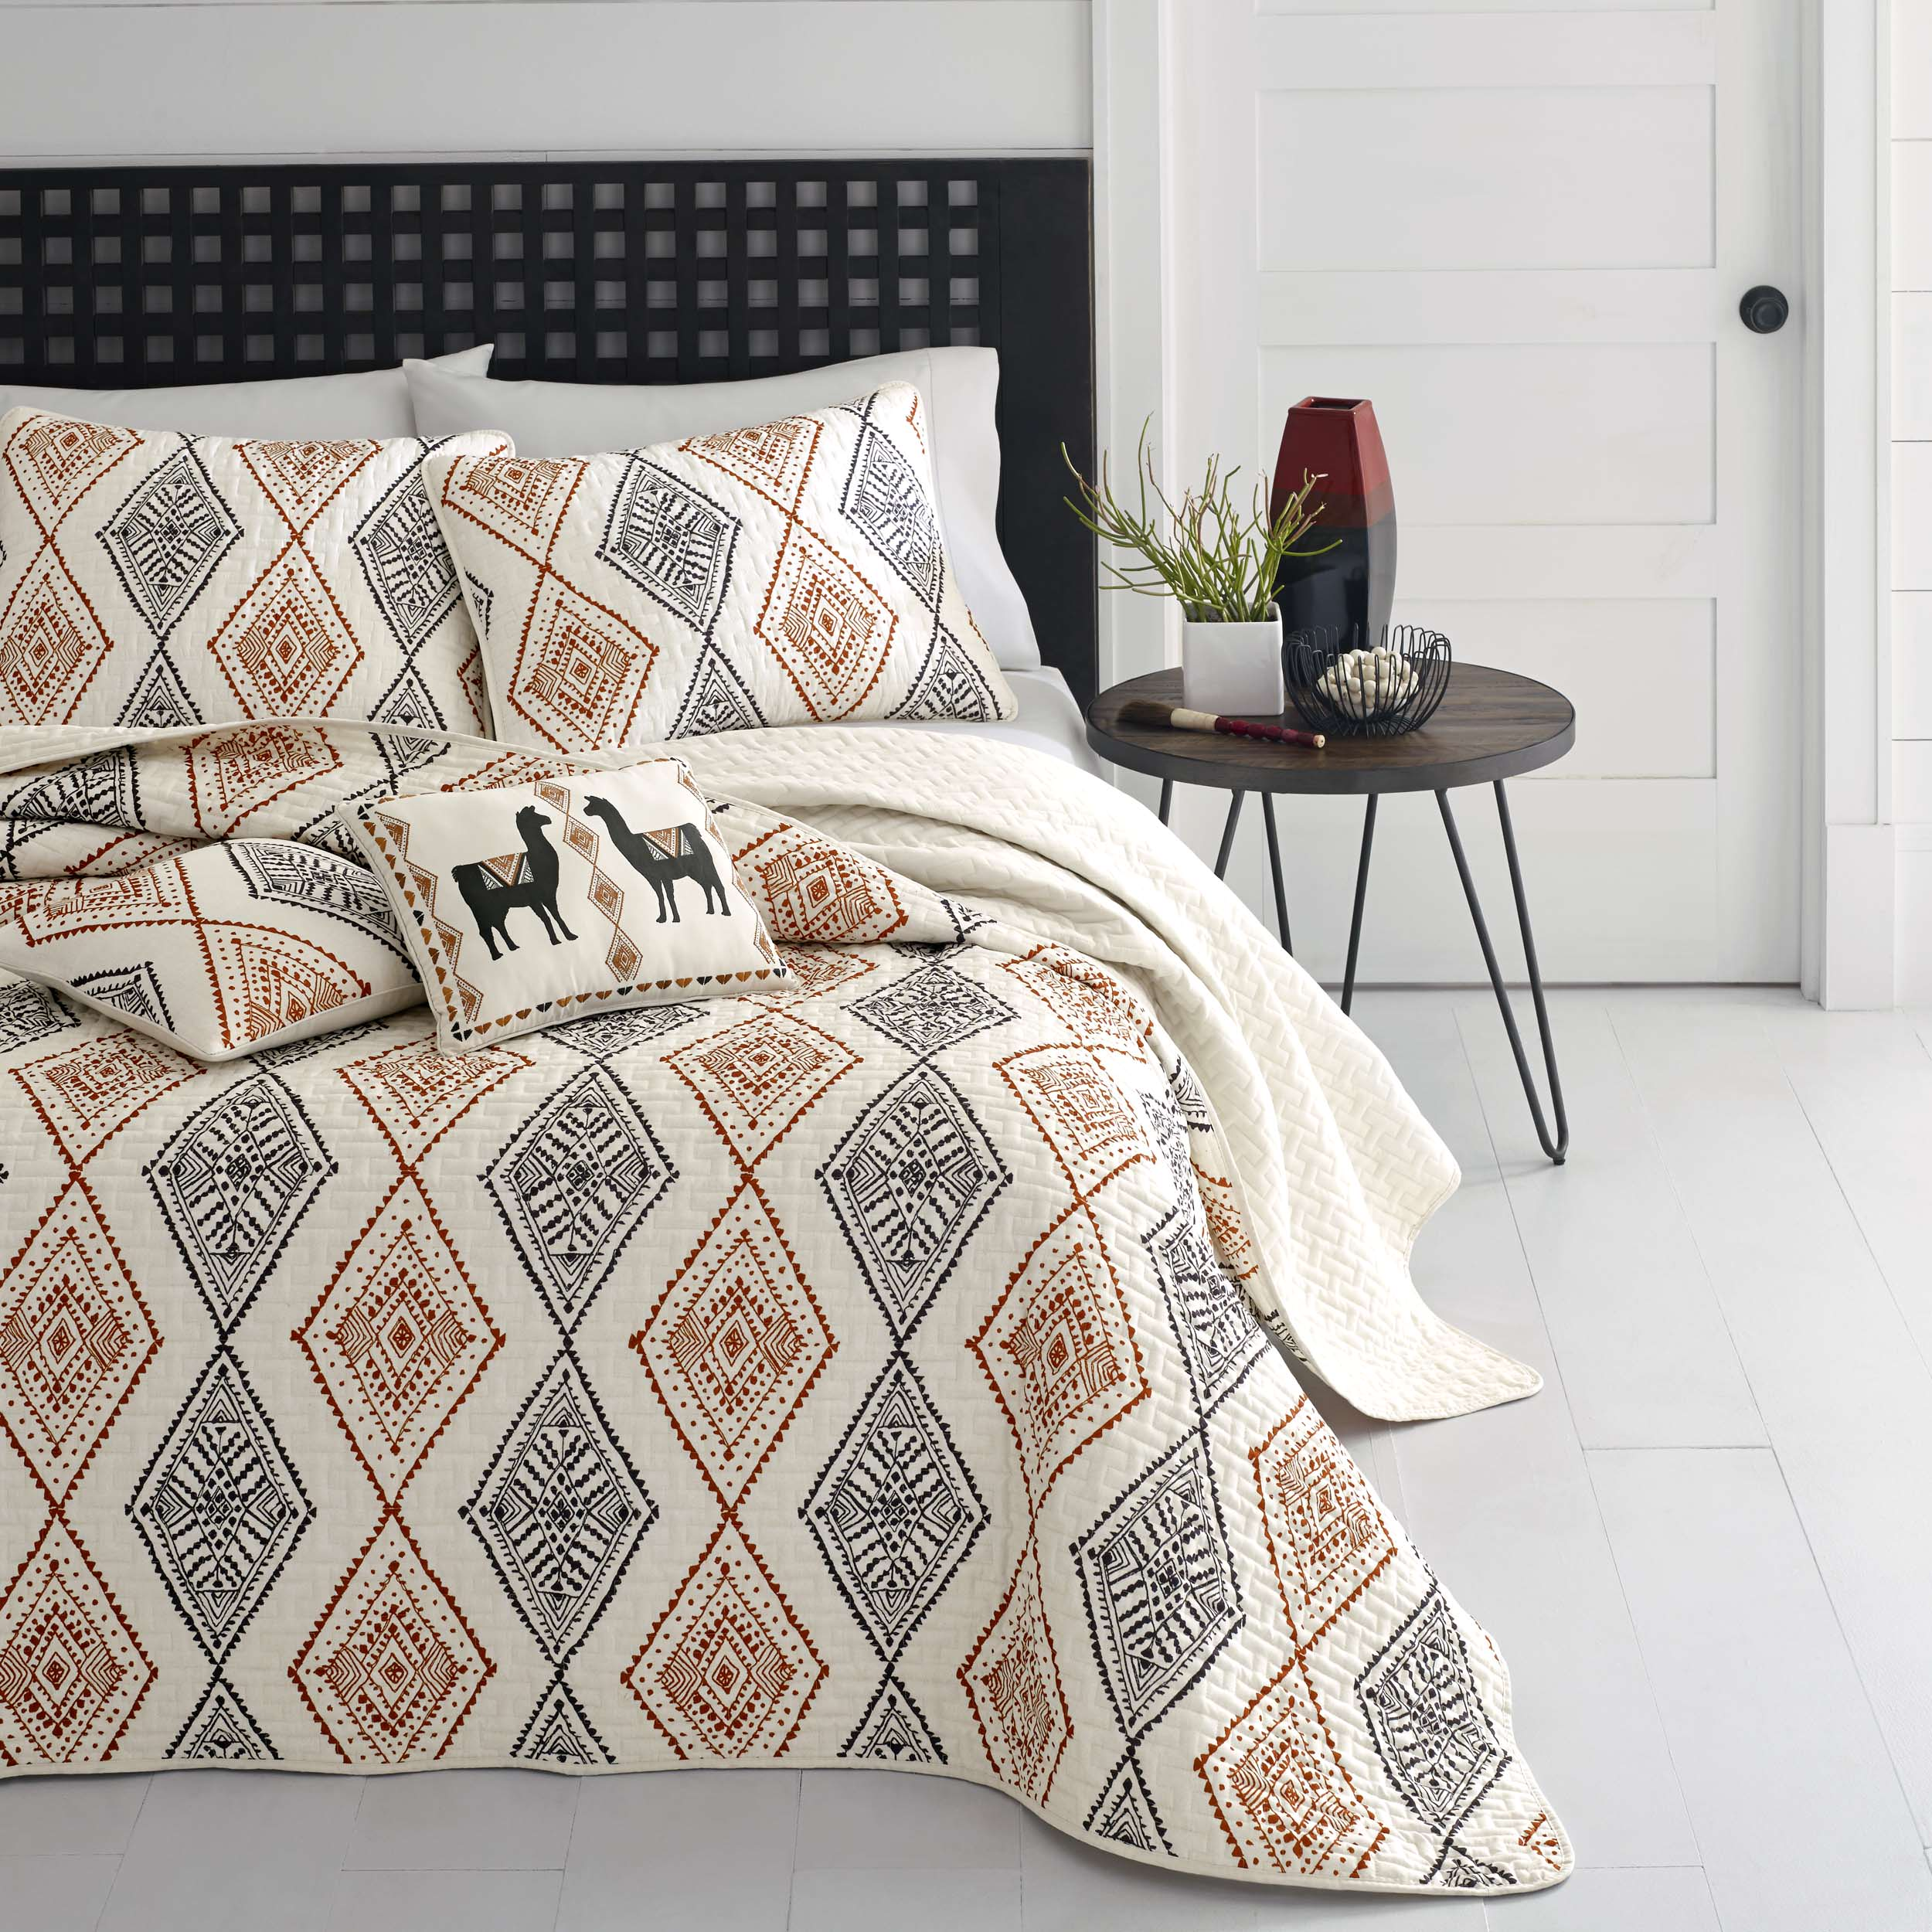 Azalea Skye Cusco Rhombus Medium Beige Quilt Set, Full/Queen